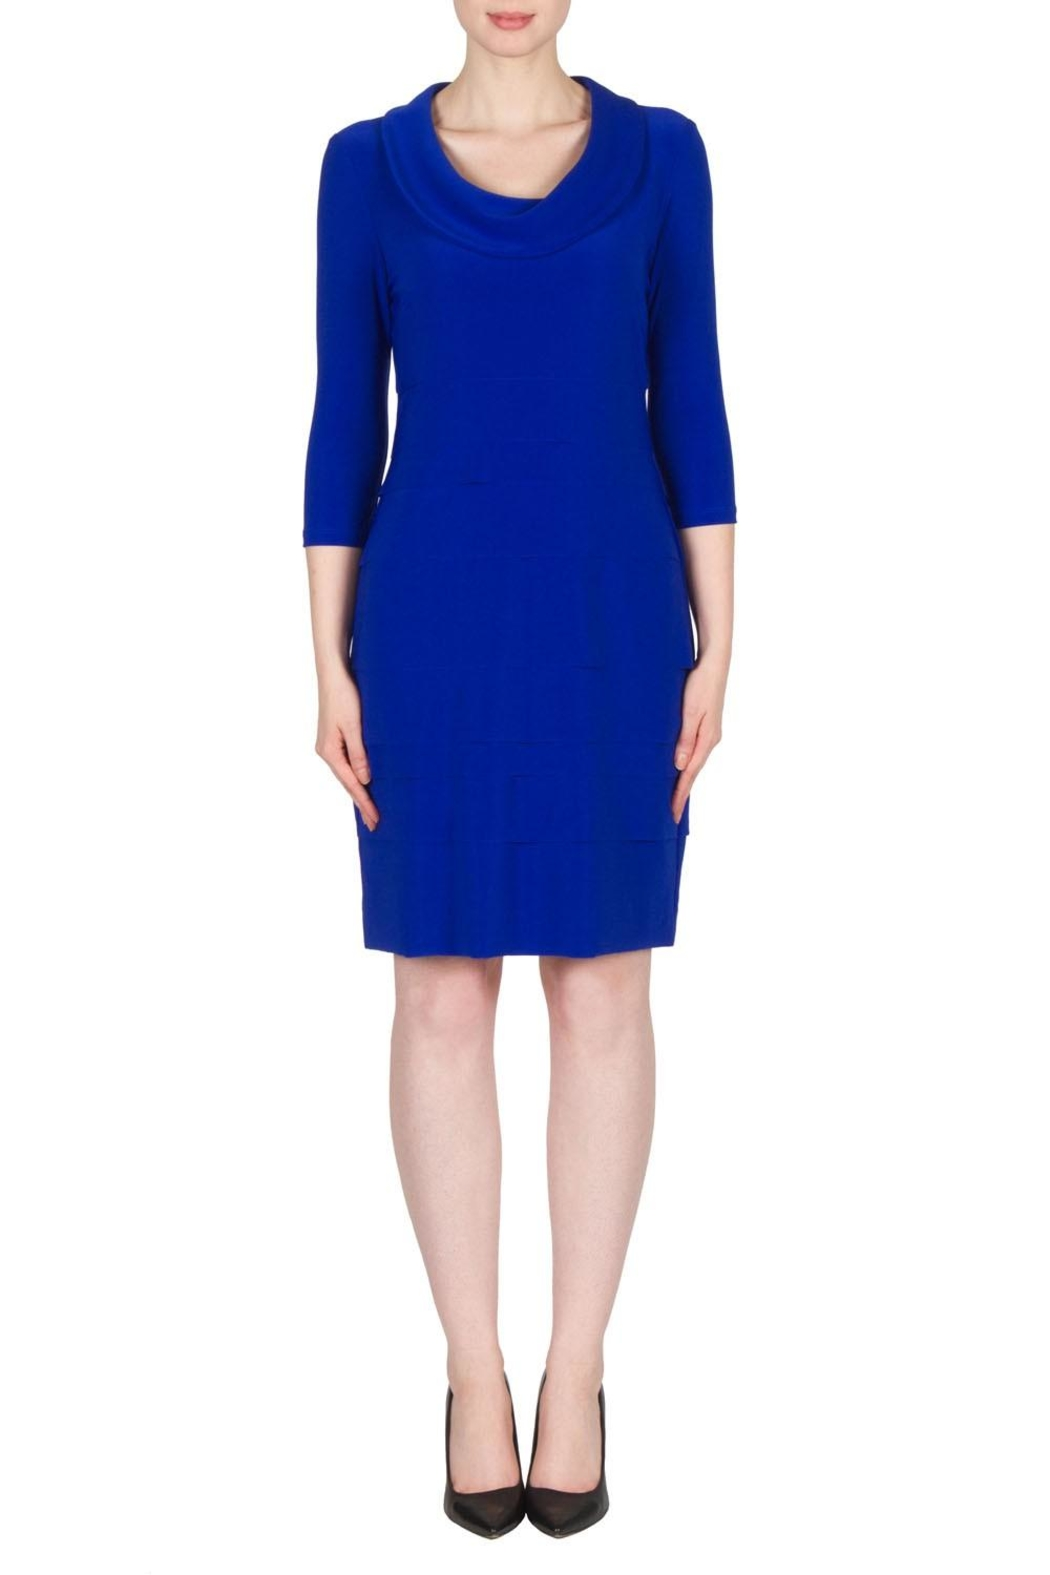 Joseph Ribkoff Royal Layered Dress - Main Image